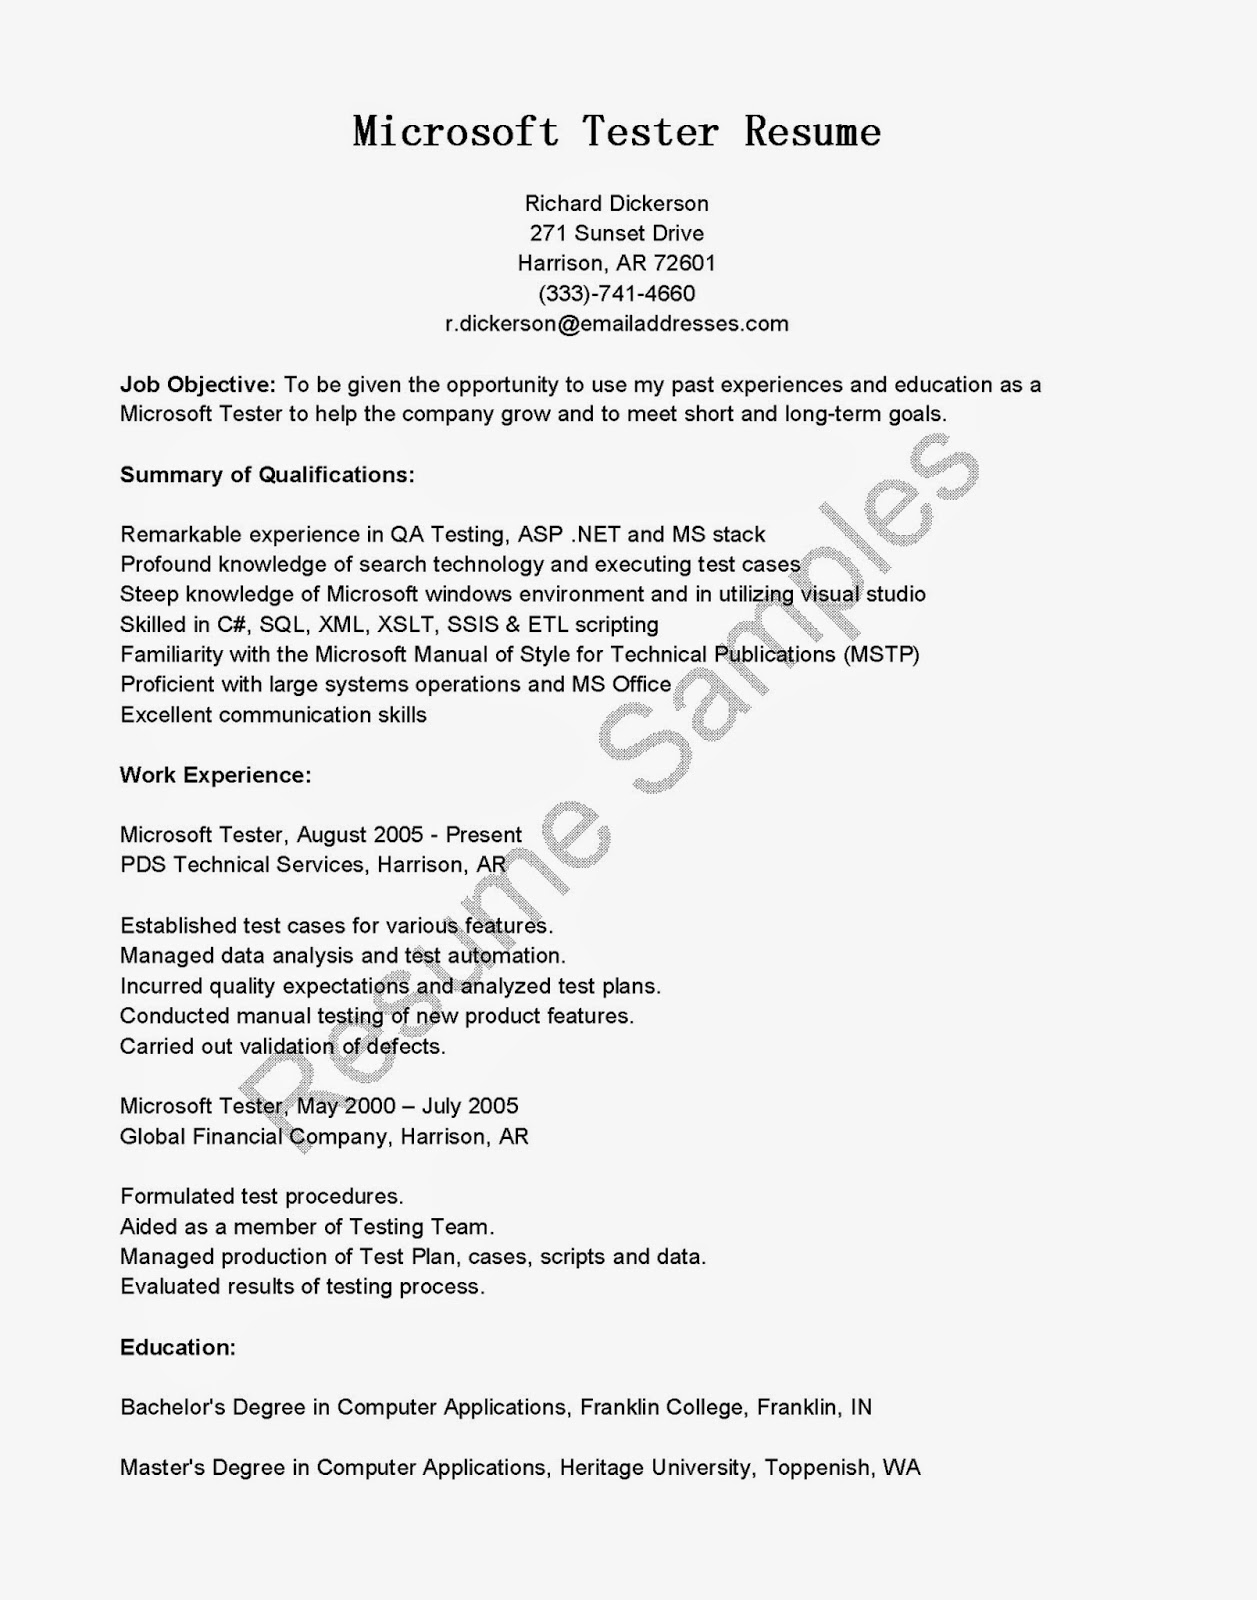 sample resume data analyst resume examples data analyst resume microsoft2btester2bresume sample